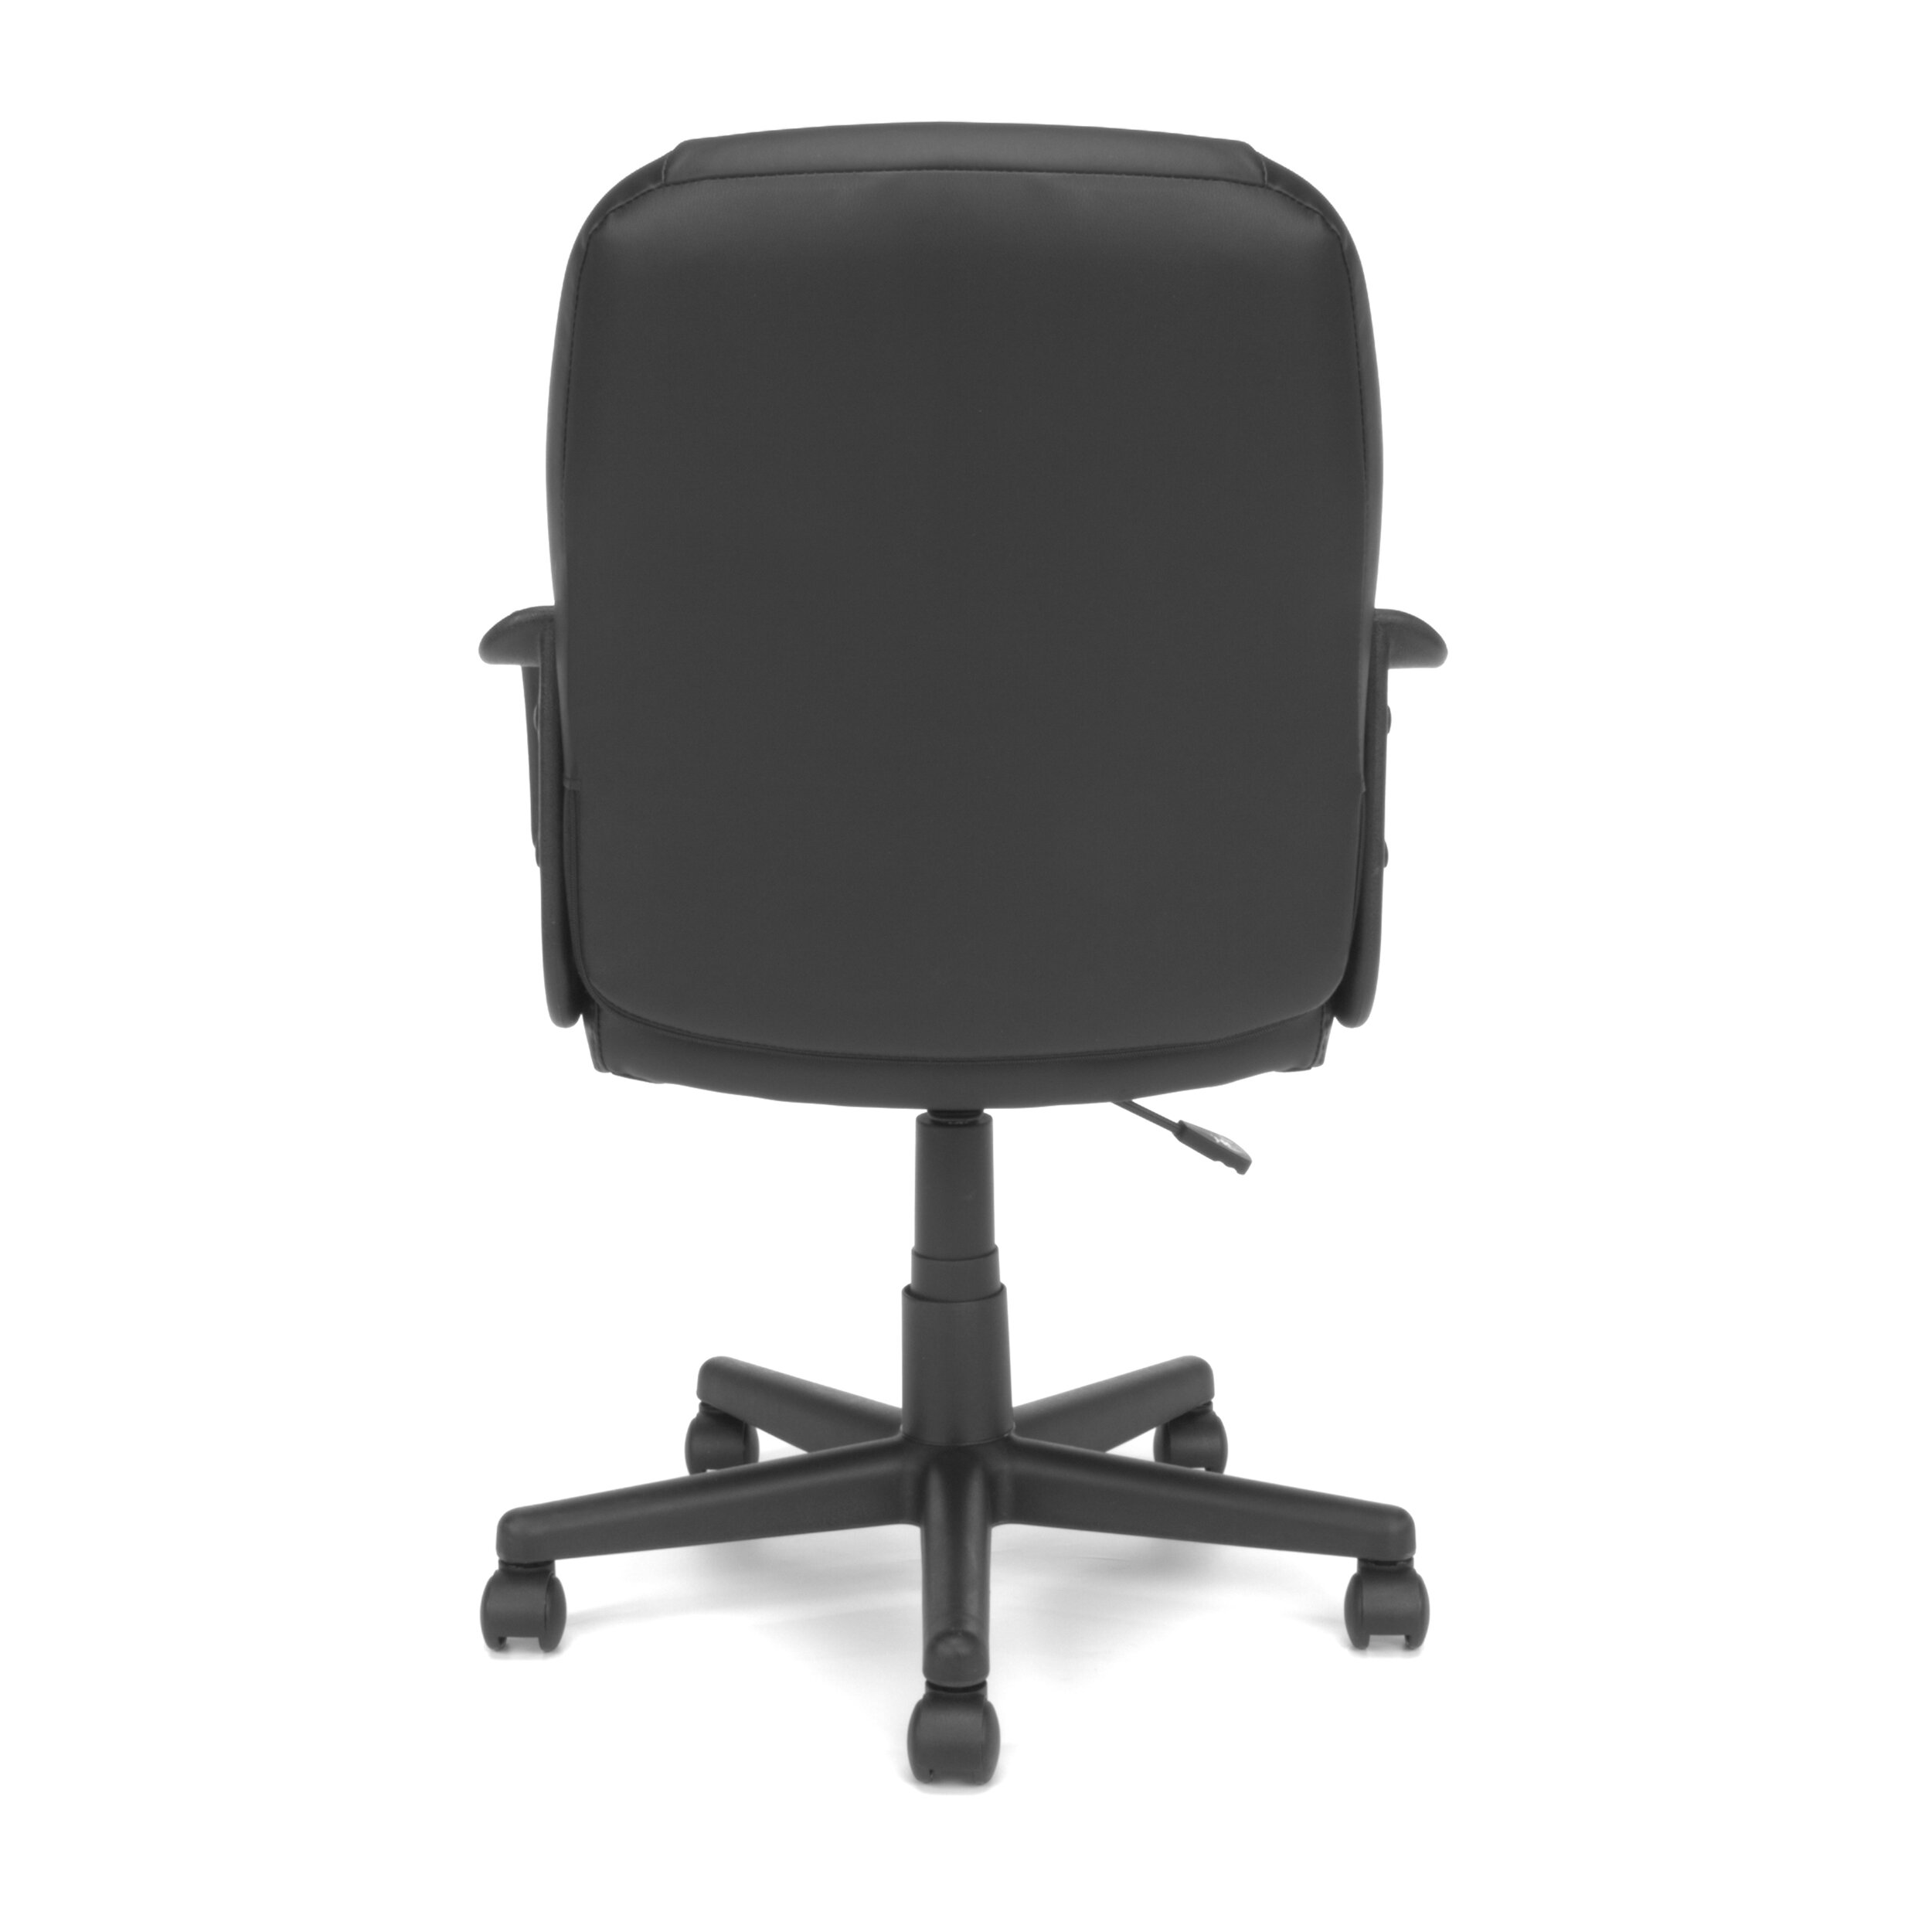 OFM Essentials Mid Back Leather Executive Office Chair Reviews Wayfair